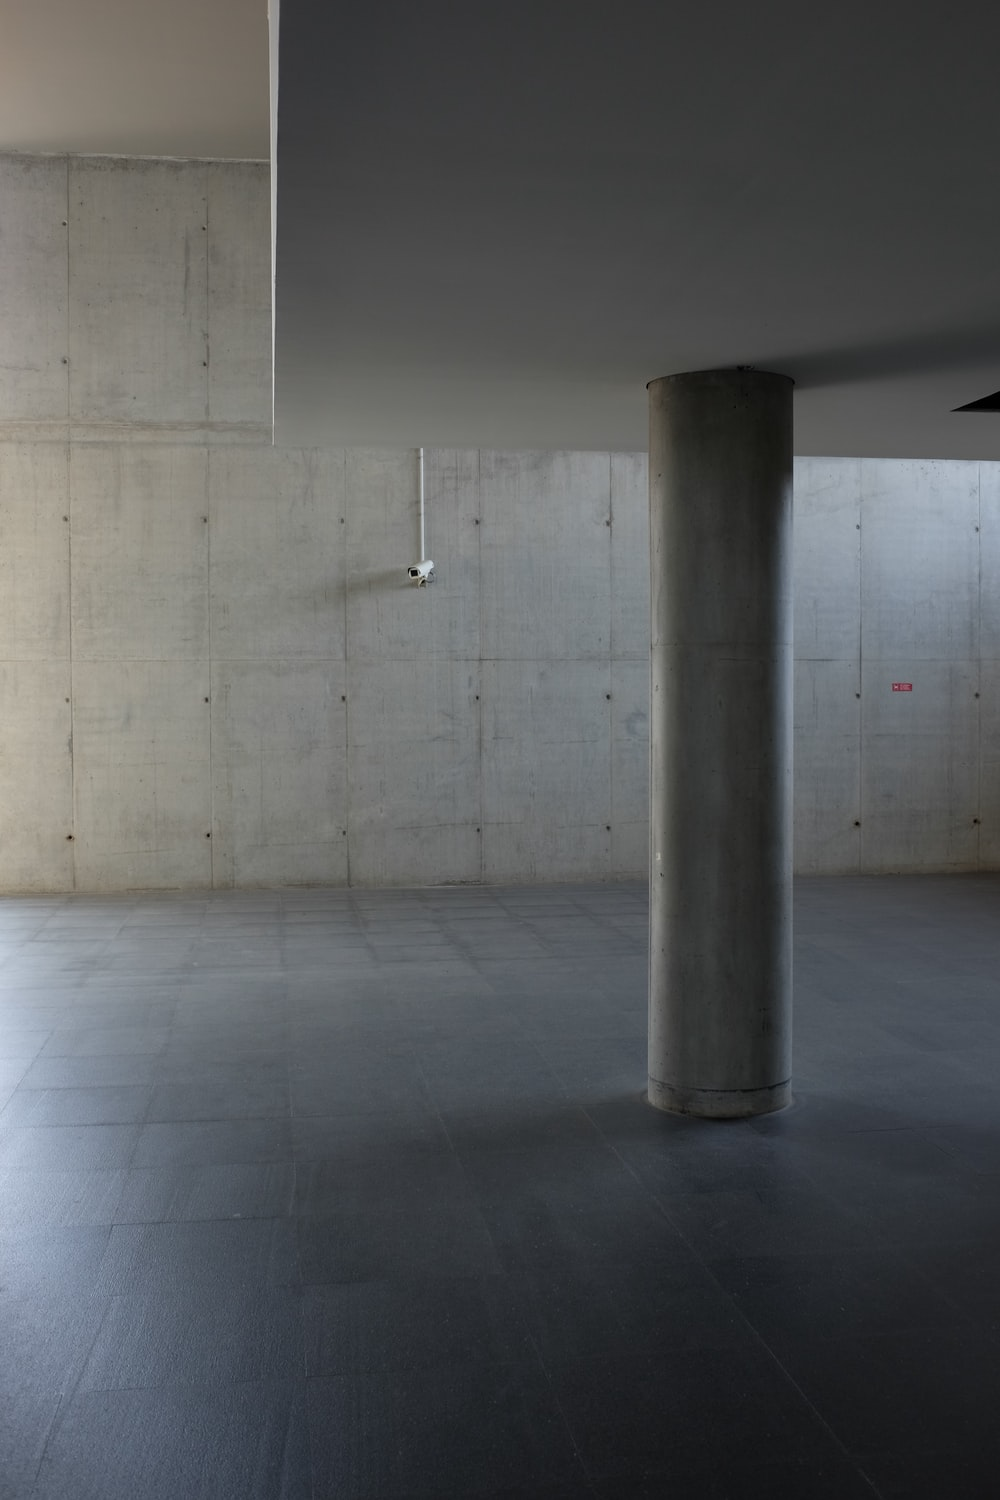 The inside of a building made of concrete walls with a platform supported by pillars.